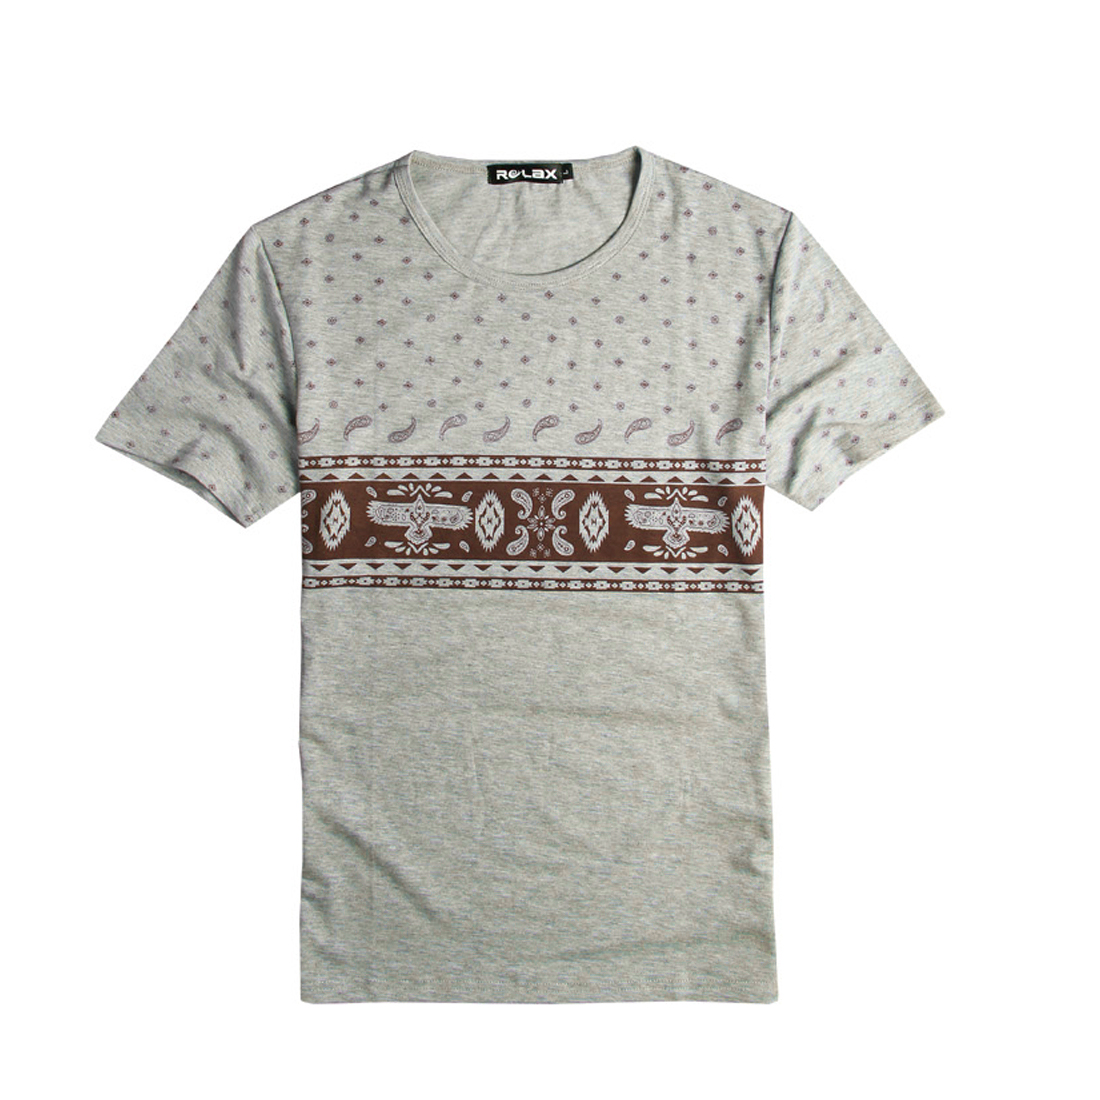 Pullover Paisley Pattern Summer Casual T-Shirt Top Gray M for Man